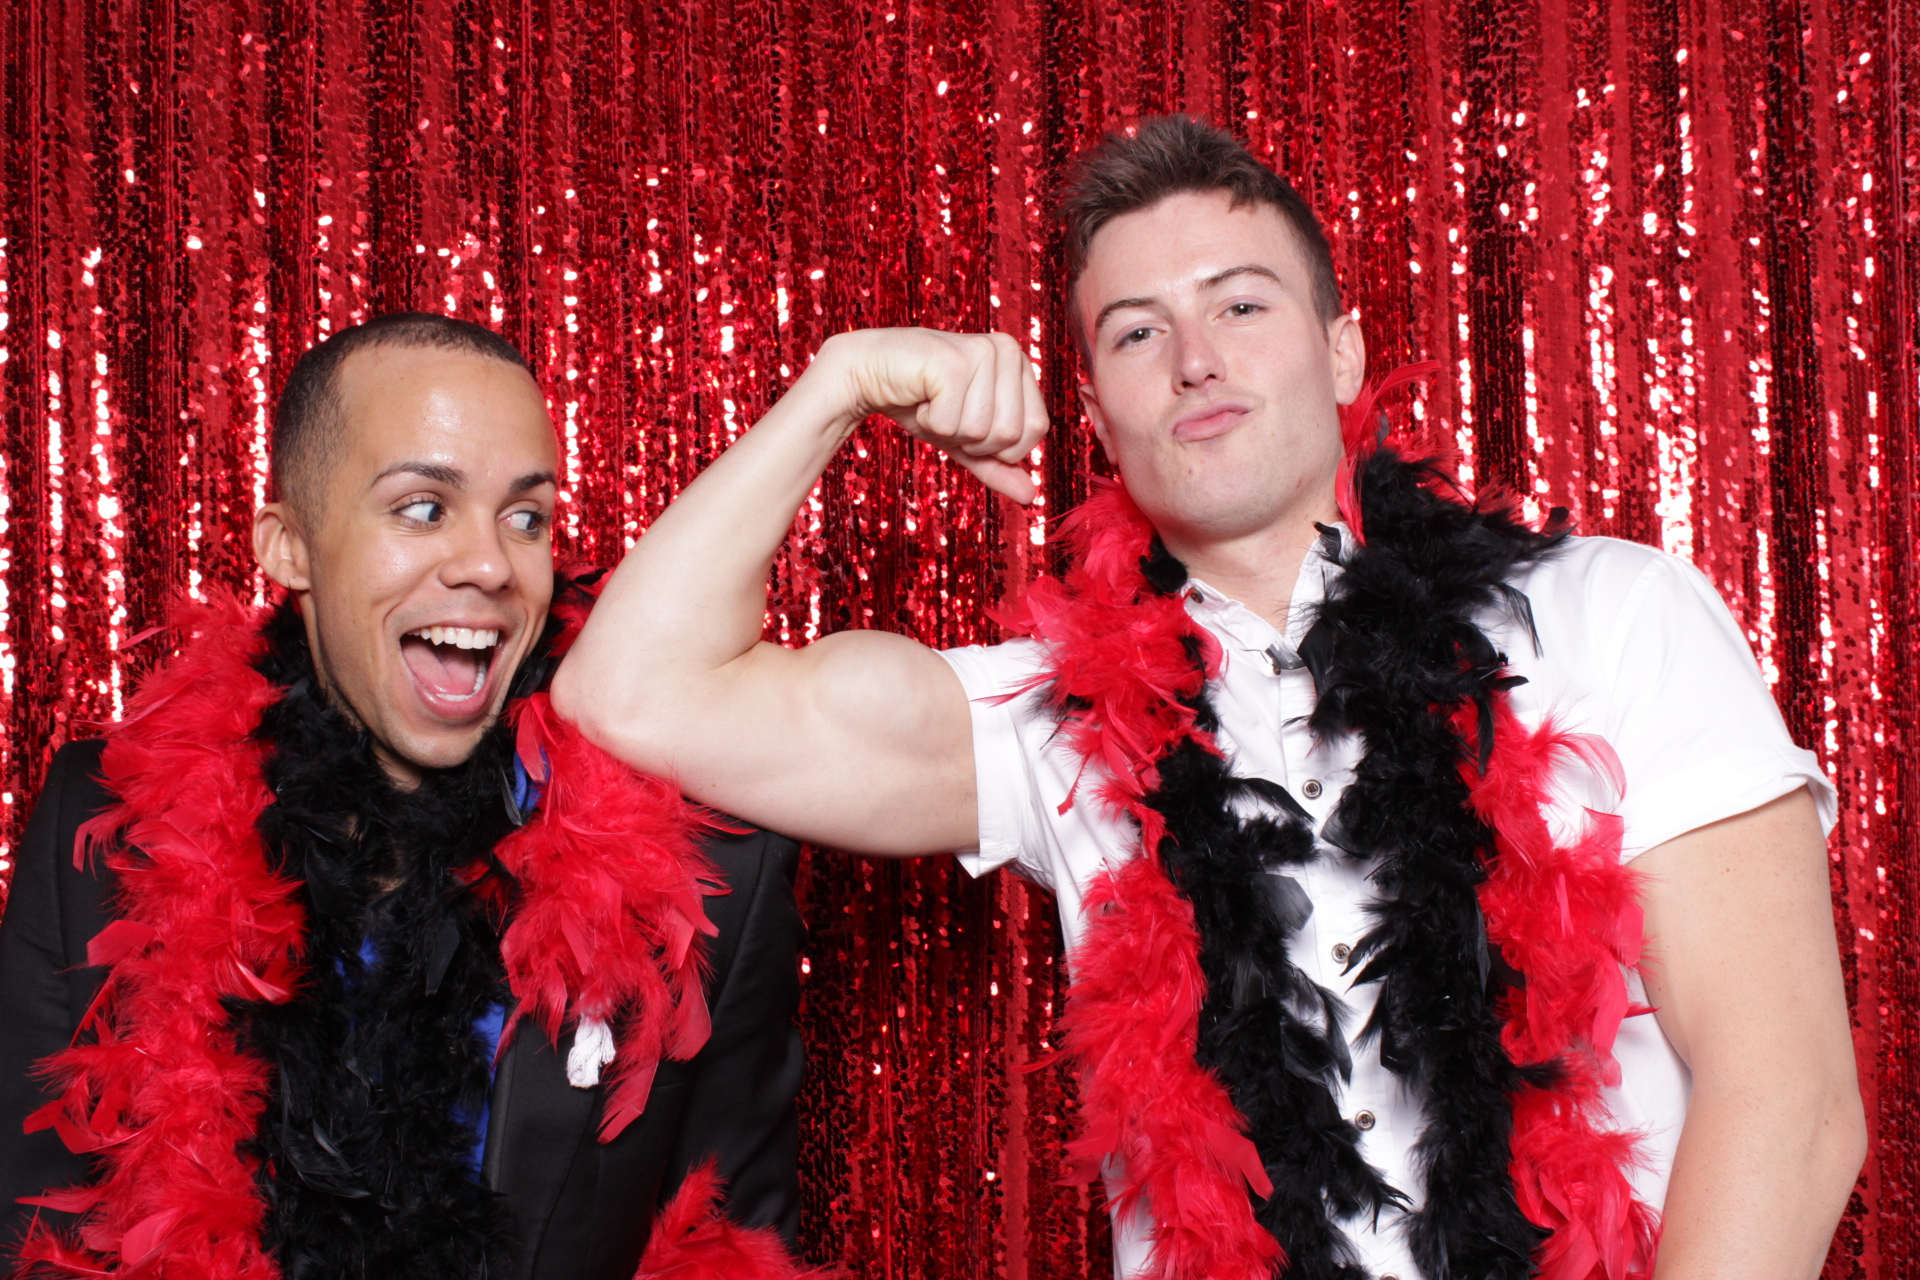 HOT RED SEQUINS BACKDROP | HOT PINK PHOTO BOOTH | DC PHOTO BOOTH RENTAL